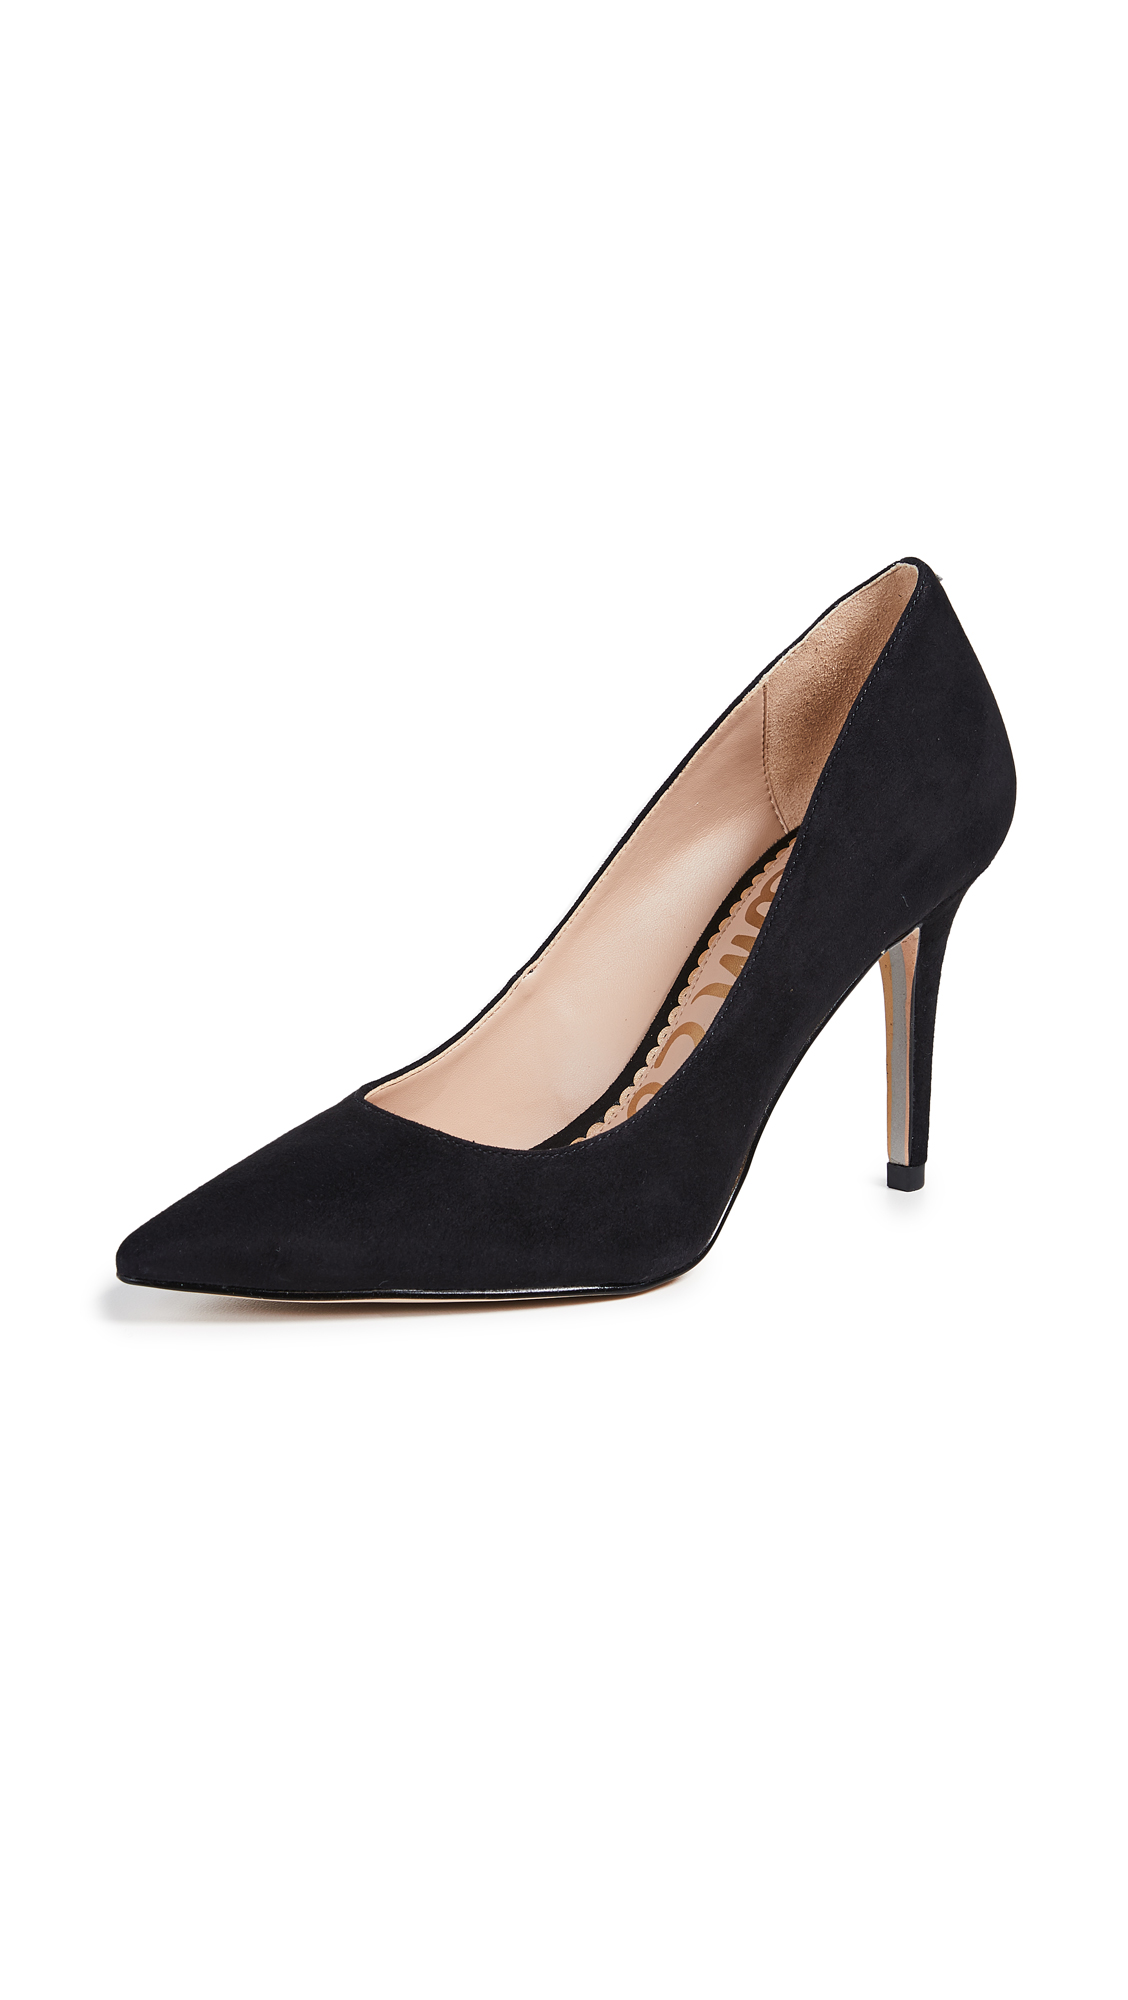 Sam Edelman Margie Pumps - Black